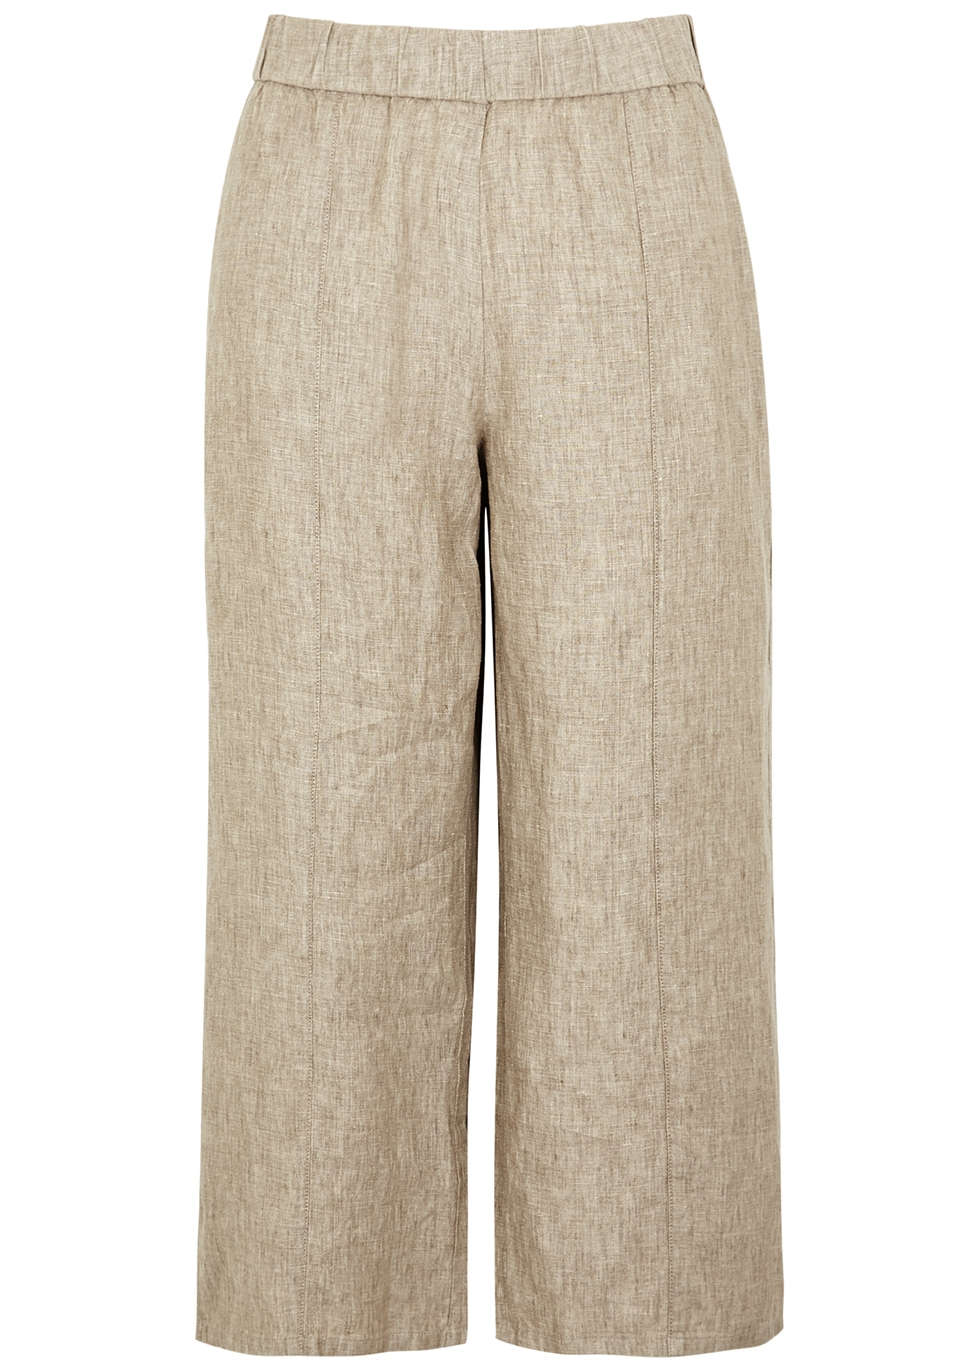 Stone wide-leg linen trousers